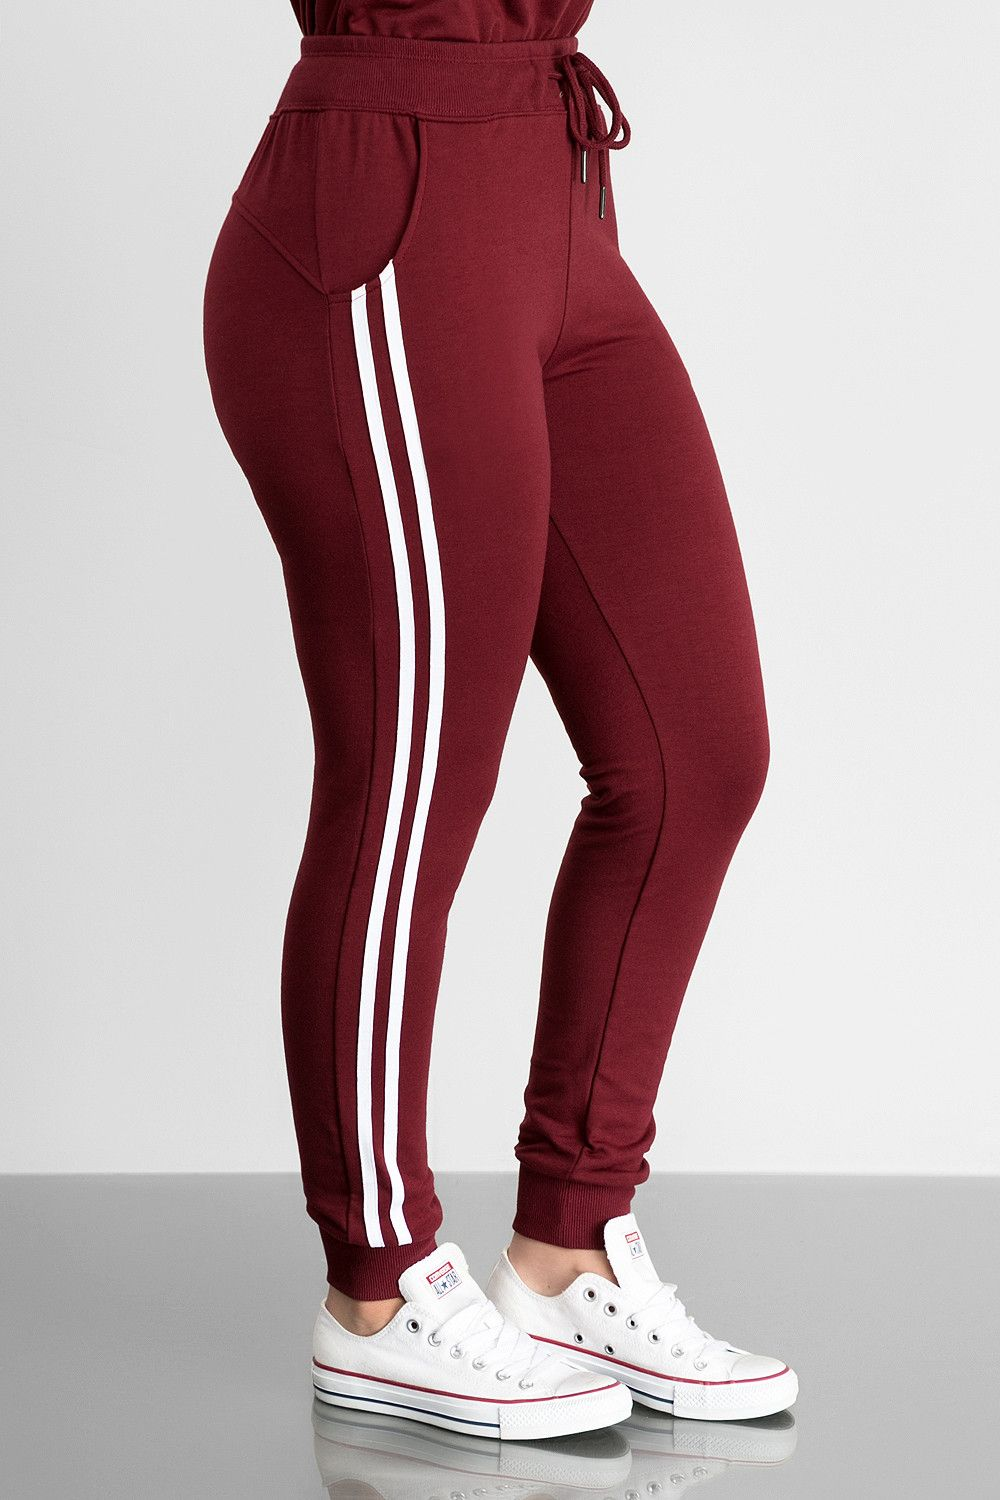 Get Ready To Turn The Heat Up In These High Waist Two White Striped Cinched Ankle Cuff Elastic Stretch Waist Band With Tie C Sweatpants Ankle Cuffs Fashion